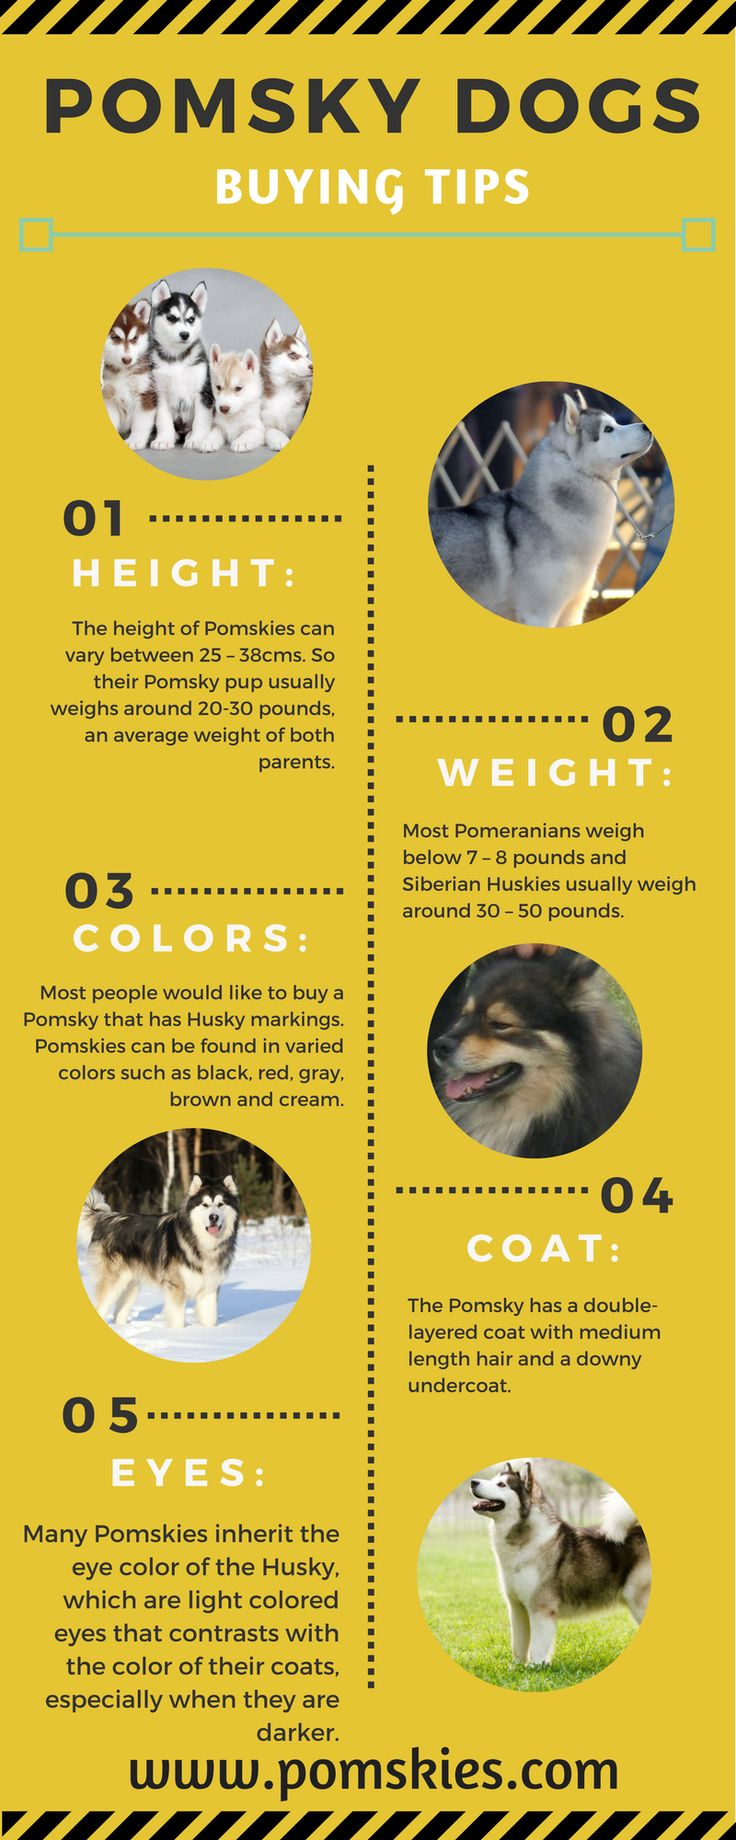 Buying Tips for Pomsky #Dogs  Pomsky is cross breed dogs. It is a mix breed of Husky and #Pomeranian. This buying tips will help to save your money. Main aspects while buying Pomsky dog are Height, Weight, Colours, Coat, Eyes, & Ears. You can get all these characteristics at http://www.pomskies.com/  http://www.pomskies.com/